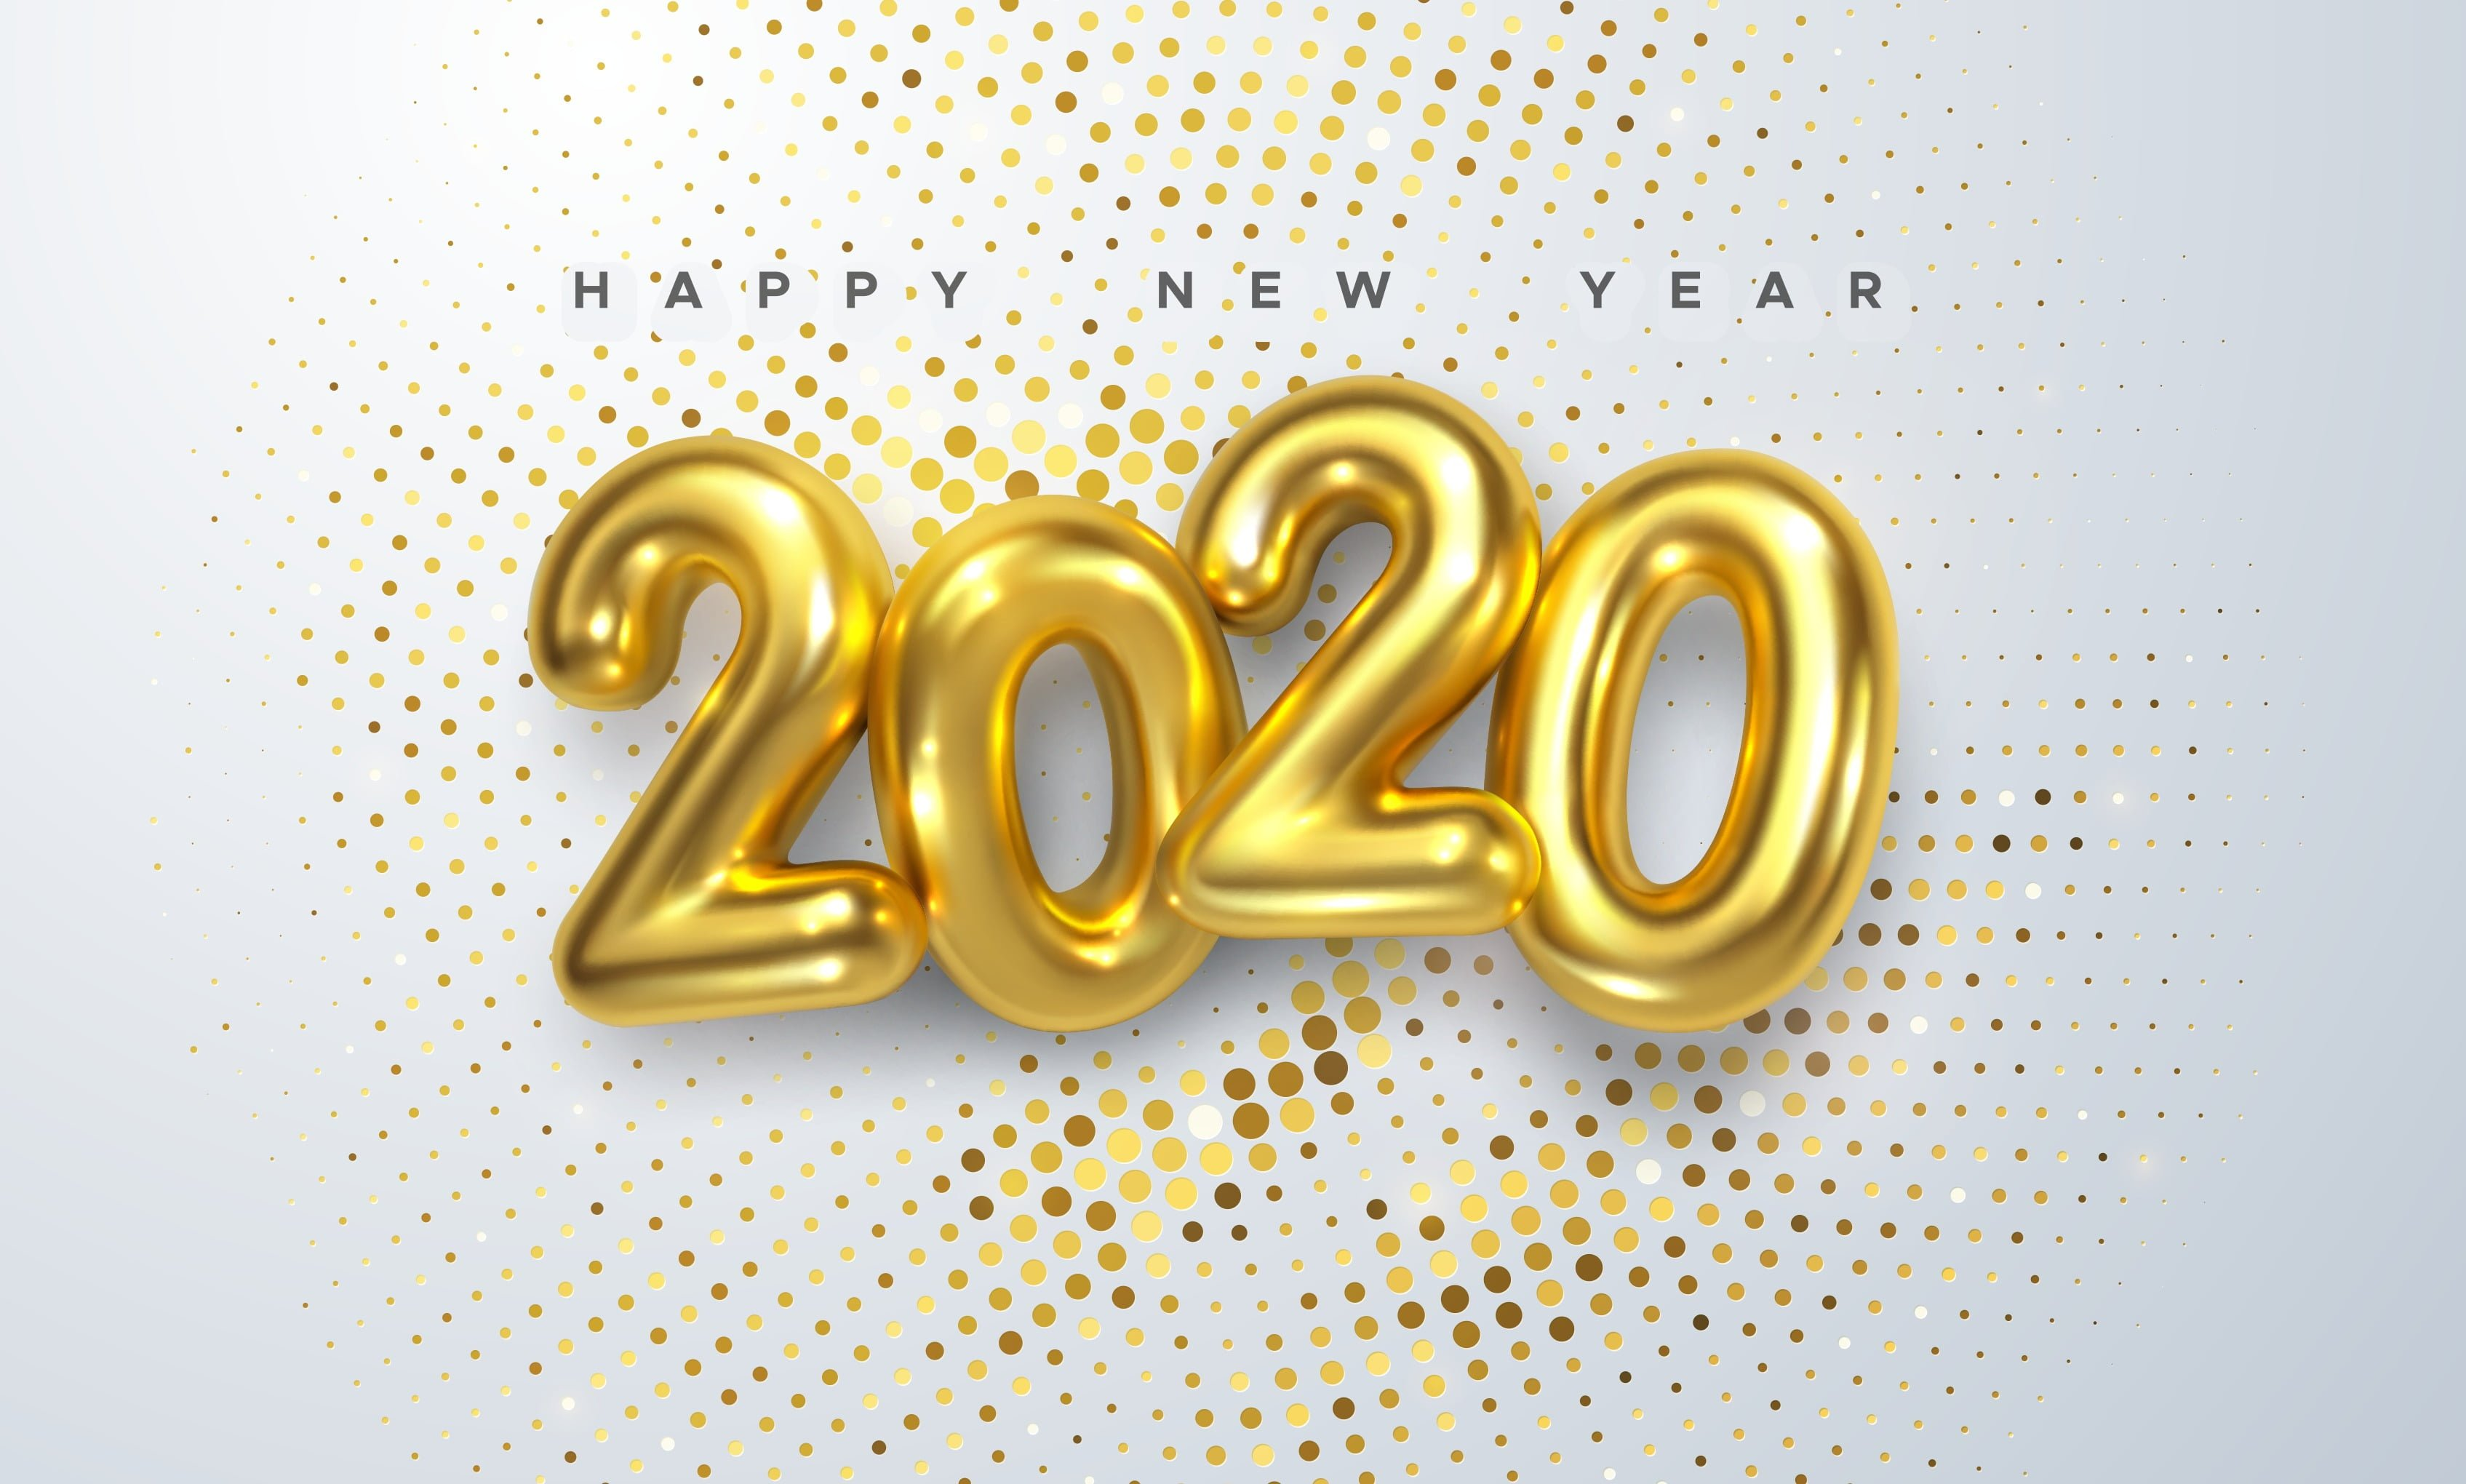 An animated graphic image that says Happy New Year 2020 with gold balloon letters.